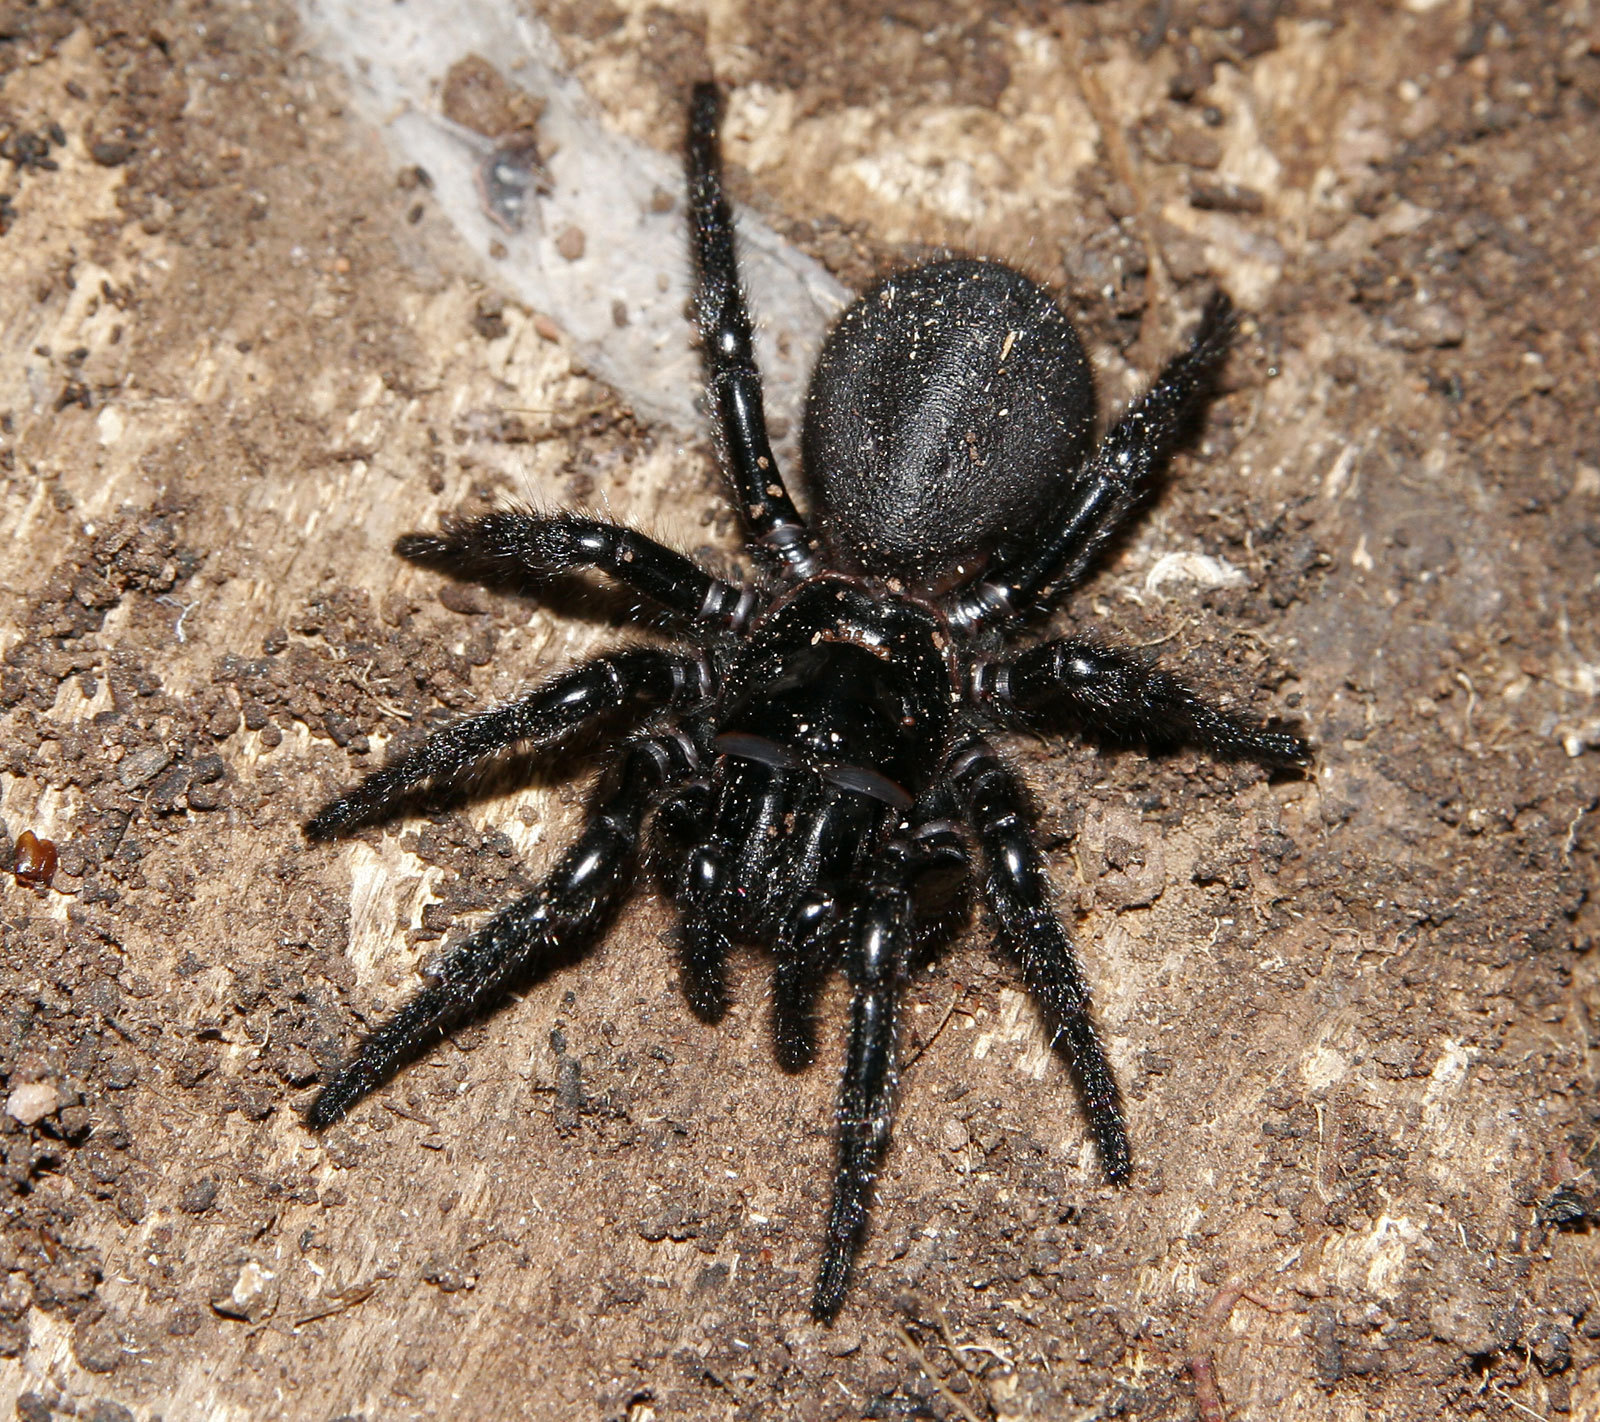 arachnology images spider hd wallpaper and background photos (8572679)